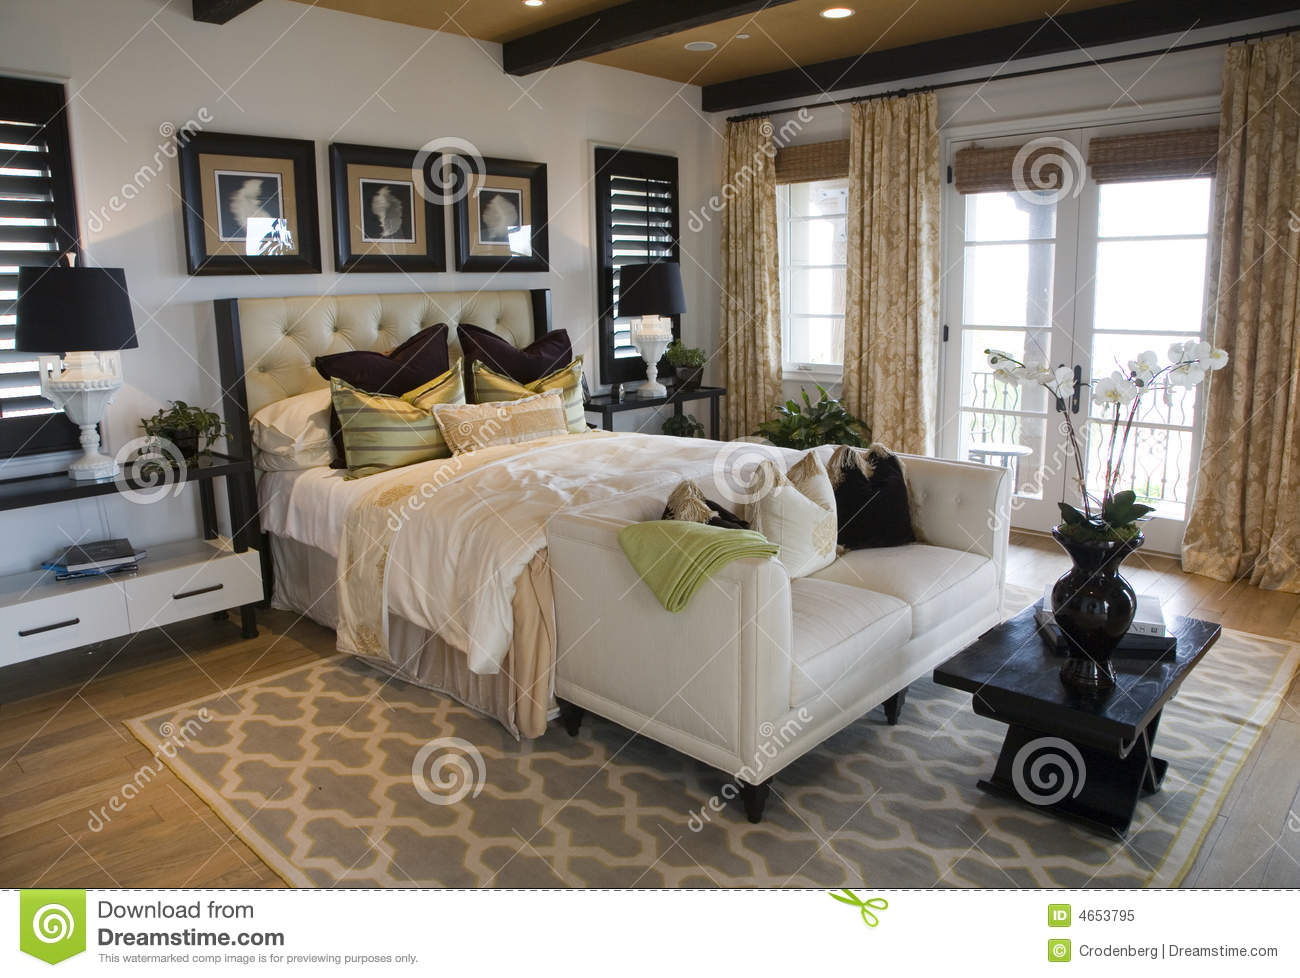 Modern luxury home bedroom. royalty free stock photo   image: 4653795